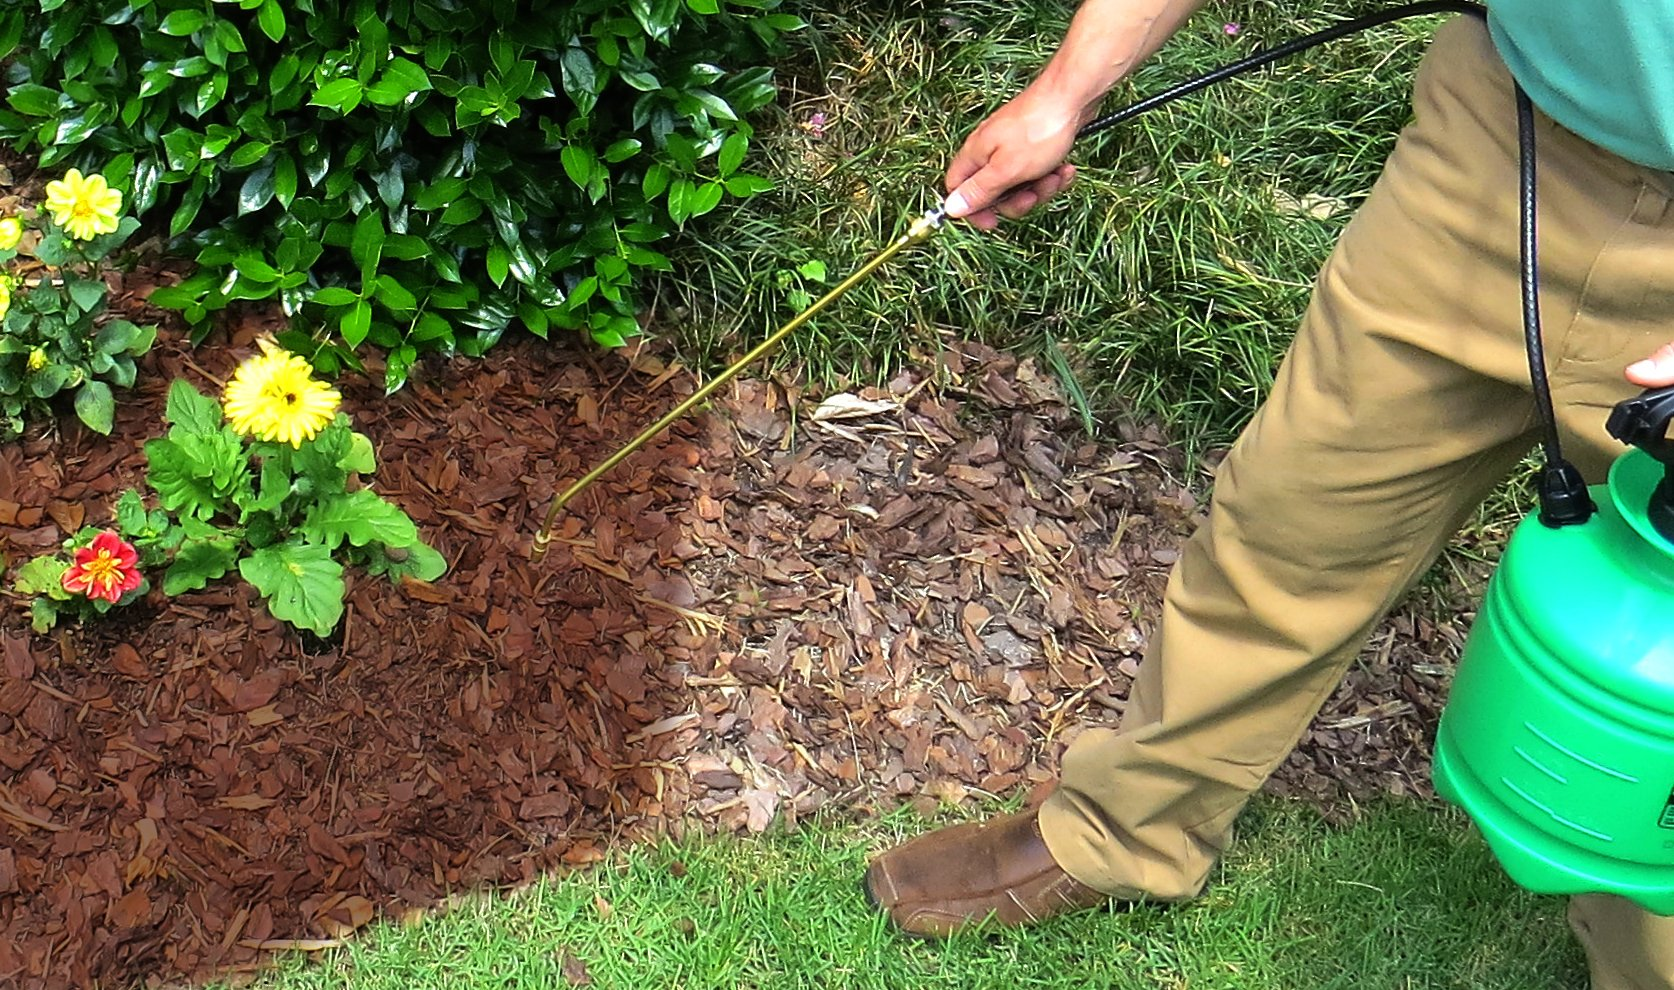 EnviroColor CB0032 851612002032 2,400 Sq. Ft. Cocoa Brown Mulch Color Concentrate, 2400 Square Feet by EnviroColor (Image #3)